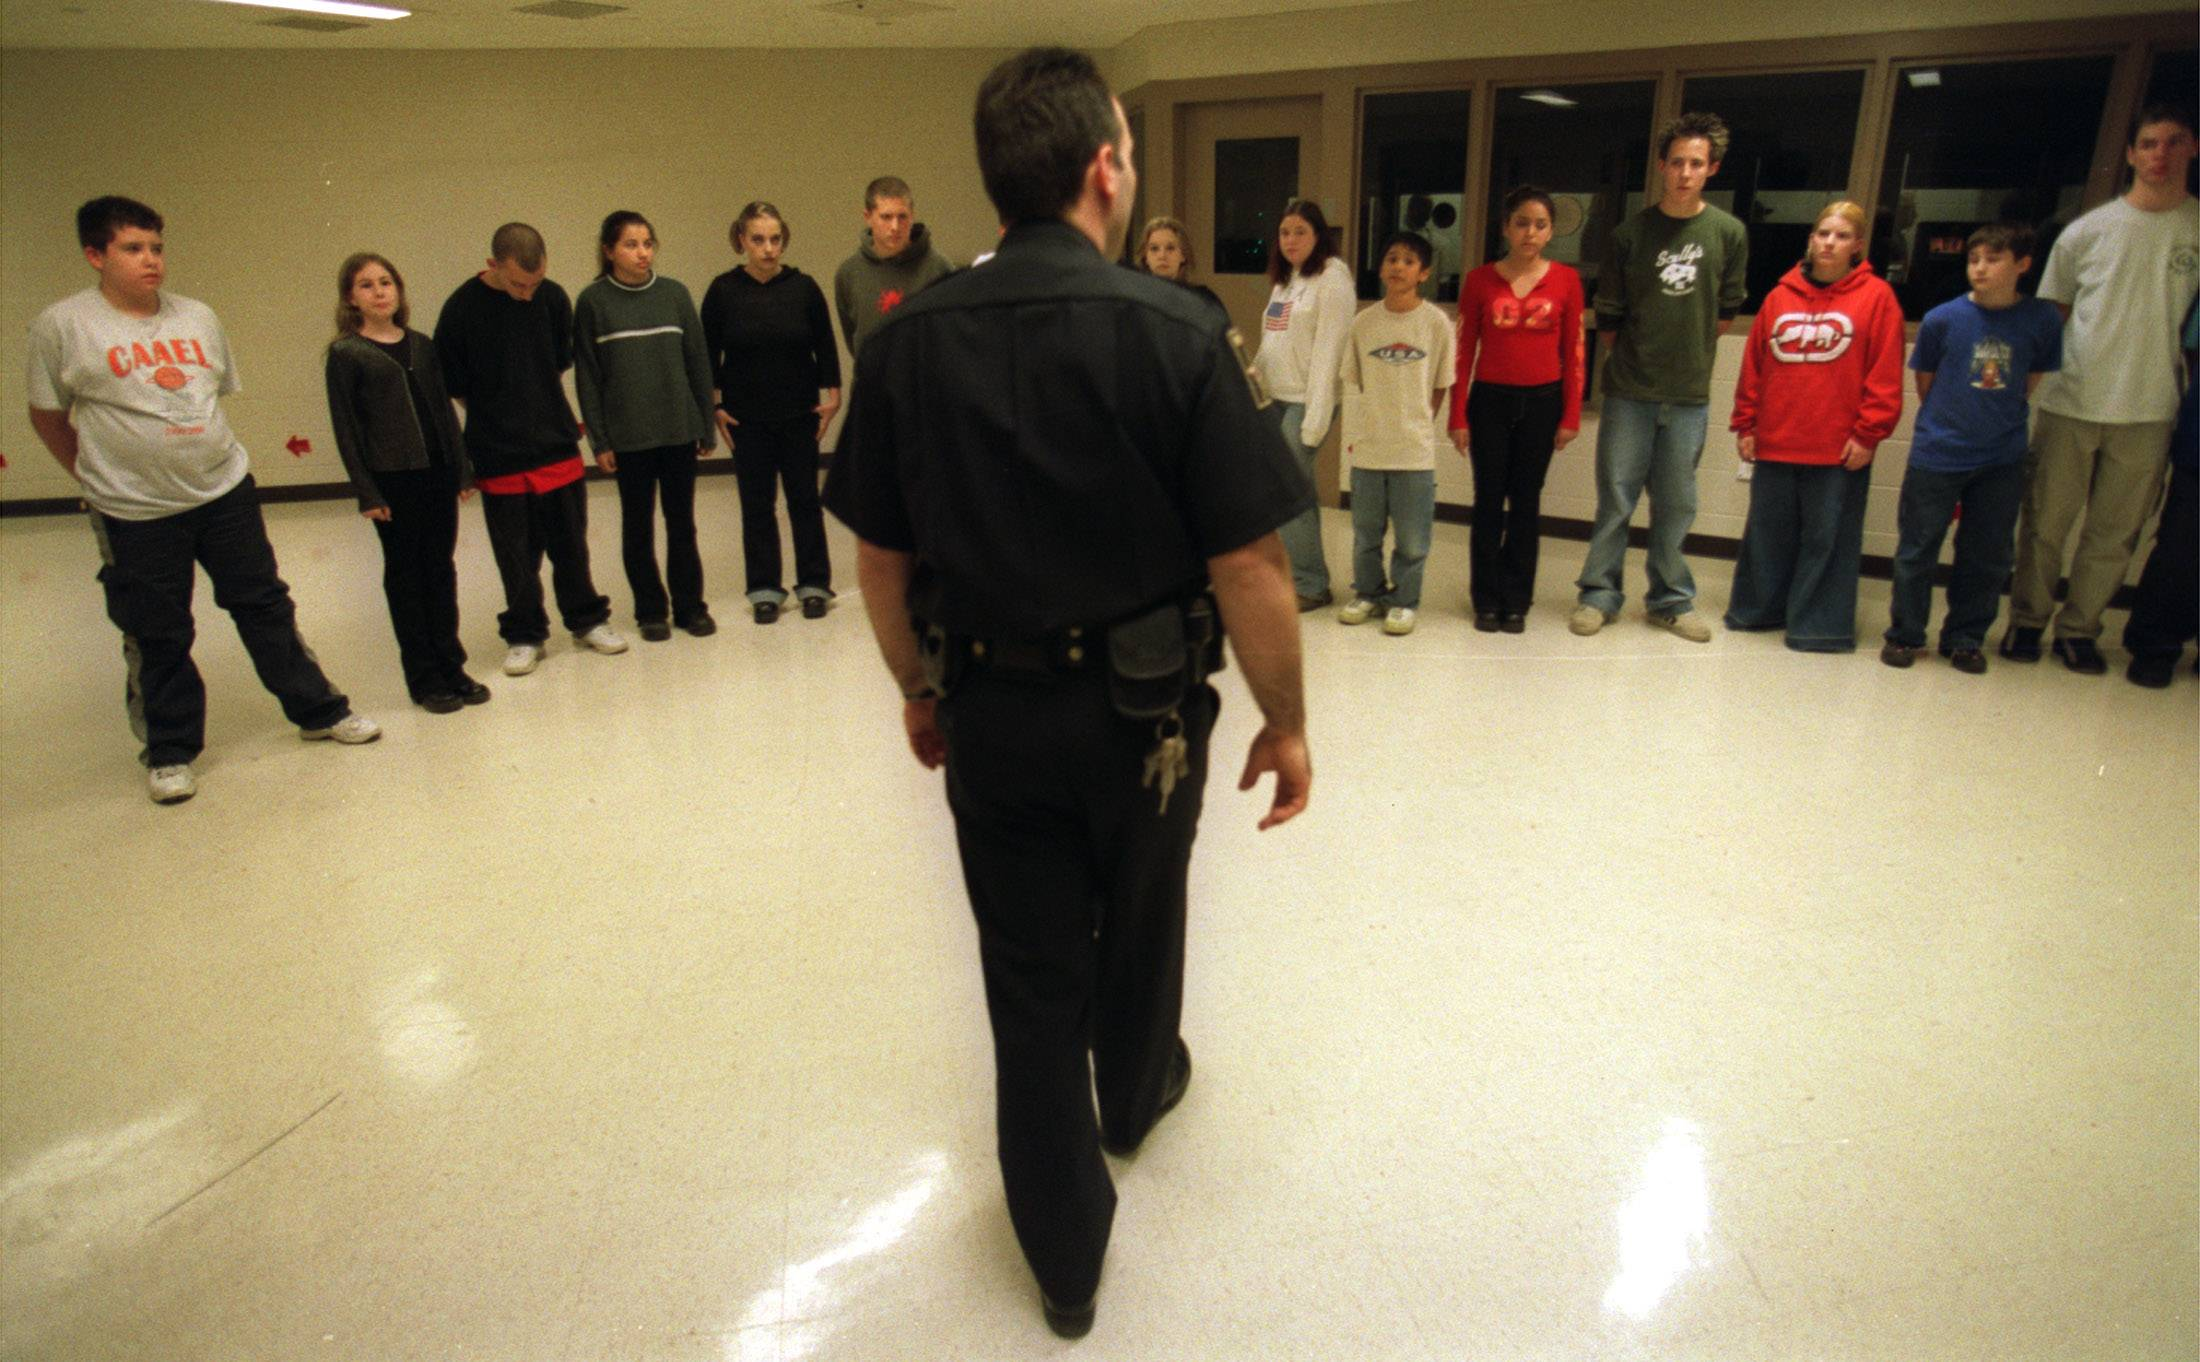 Tour Coordinator and Training Liaison Deputy John Mondelli lines up the participants during H.E.A.L's scared straight tour of the DuPage County Jail in Wheaton Tuesday night.